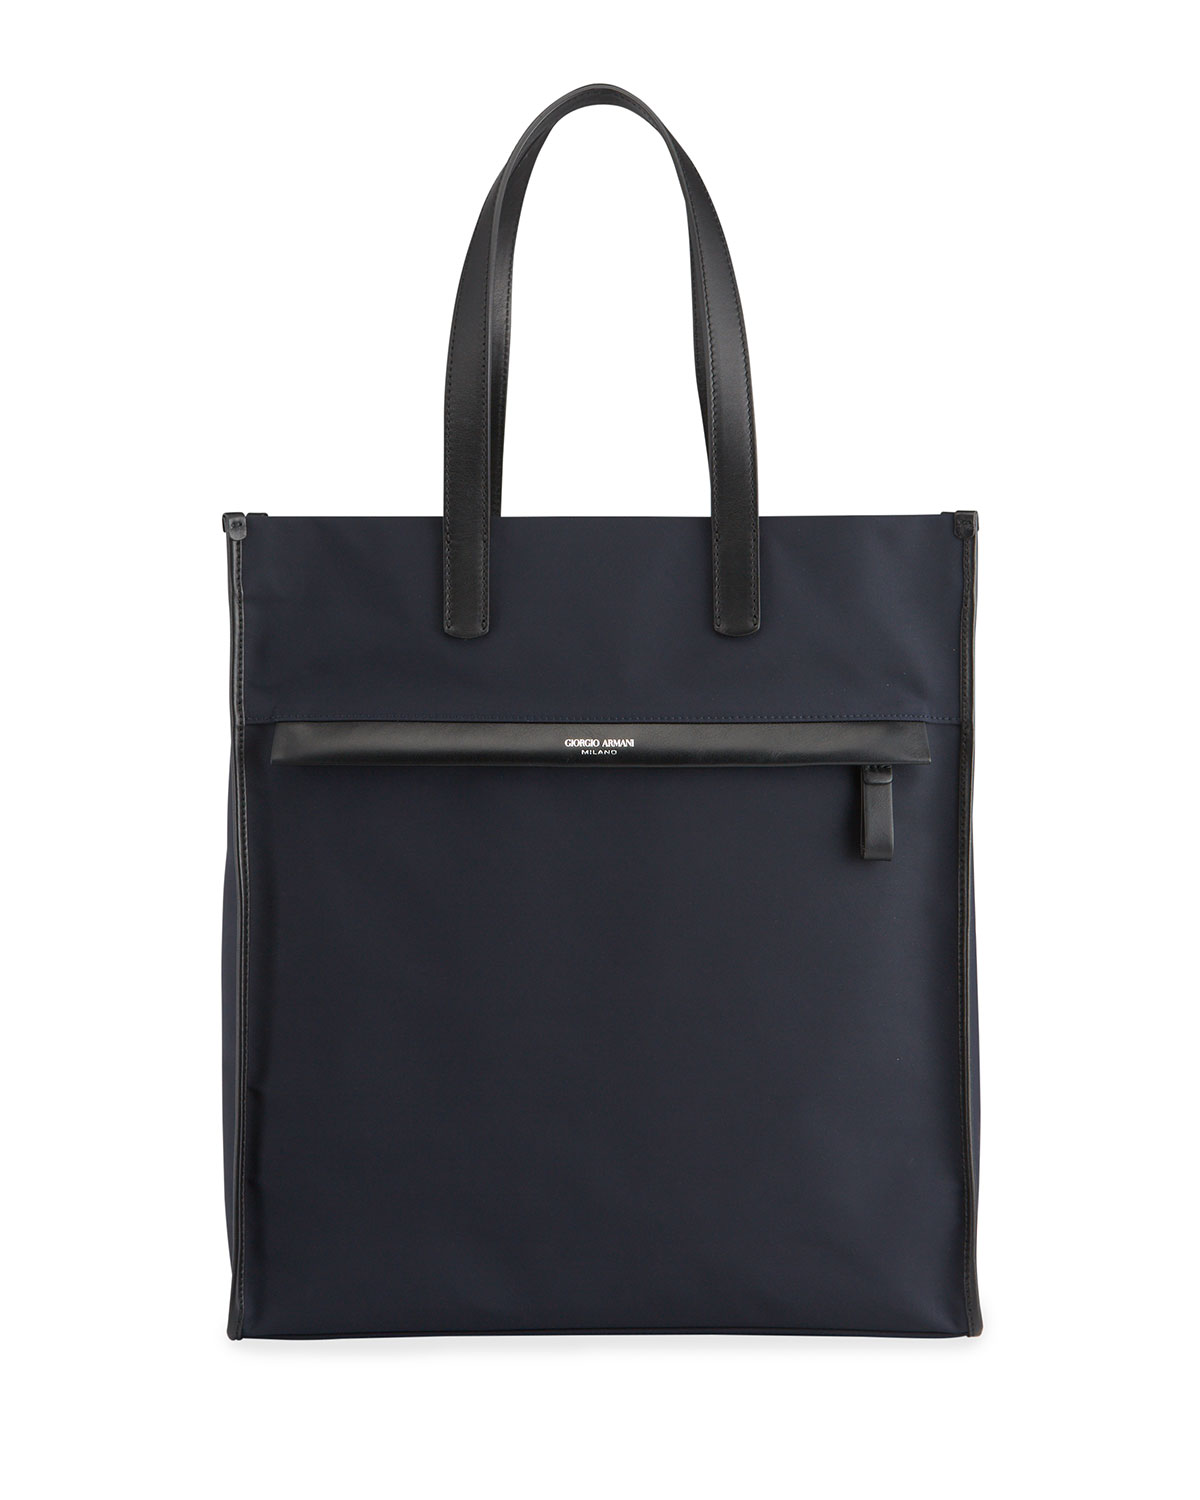 Giorgio Armani MEN'S WATERPROOF NYLON/LEATHER TOTE BAG